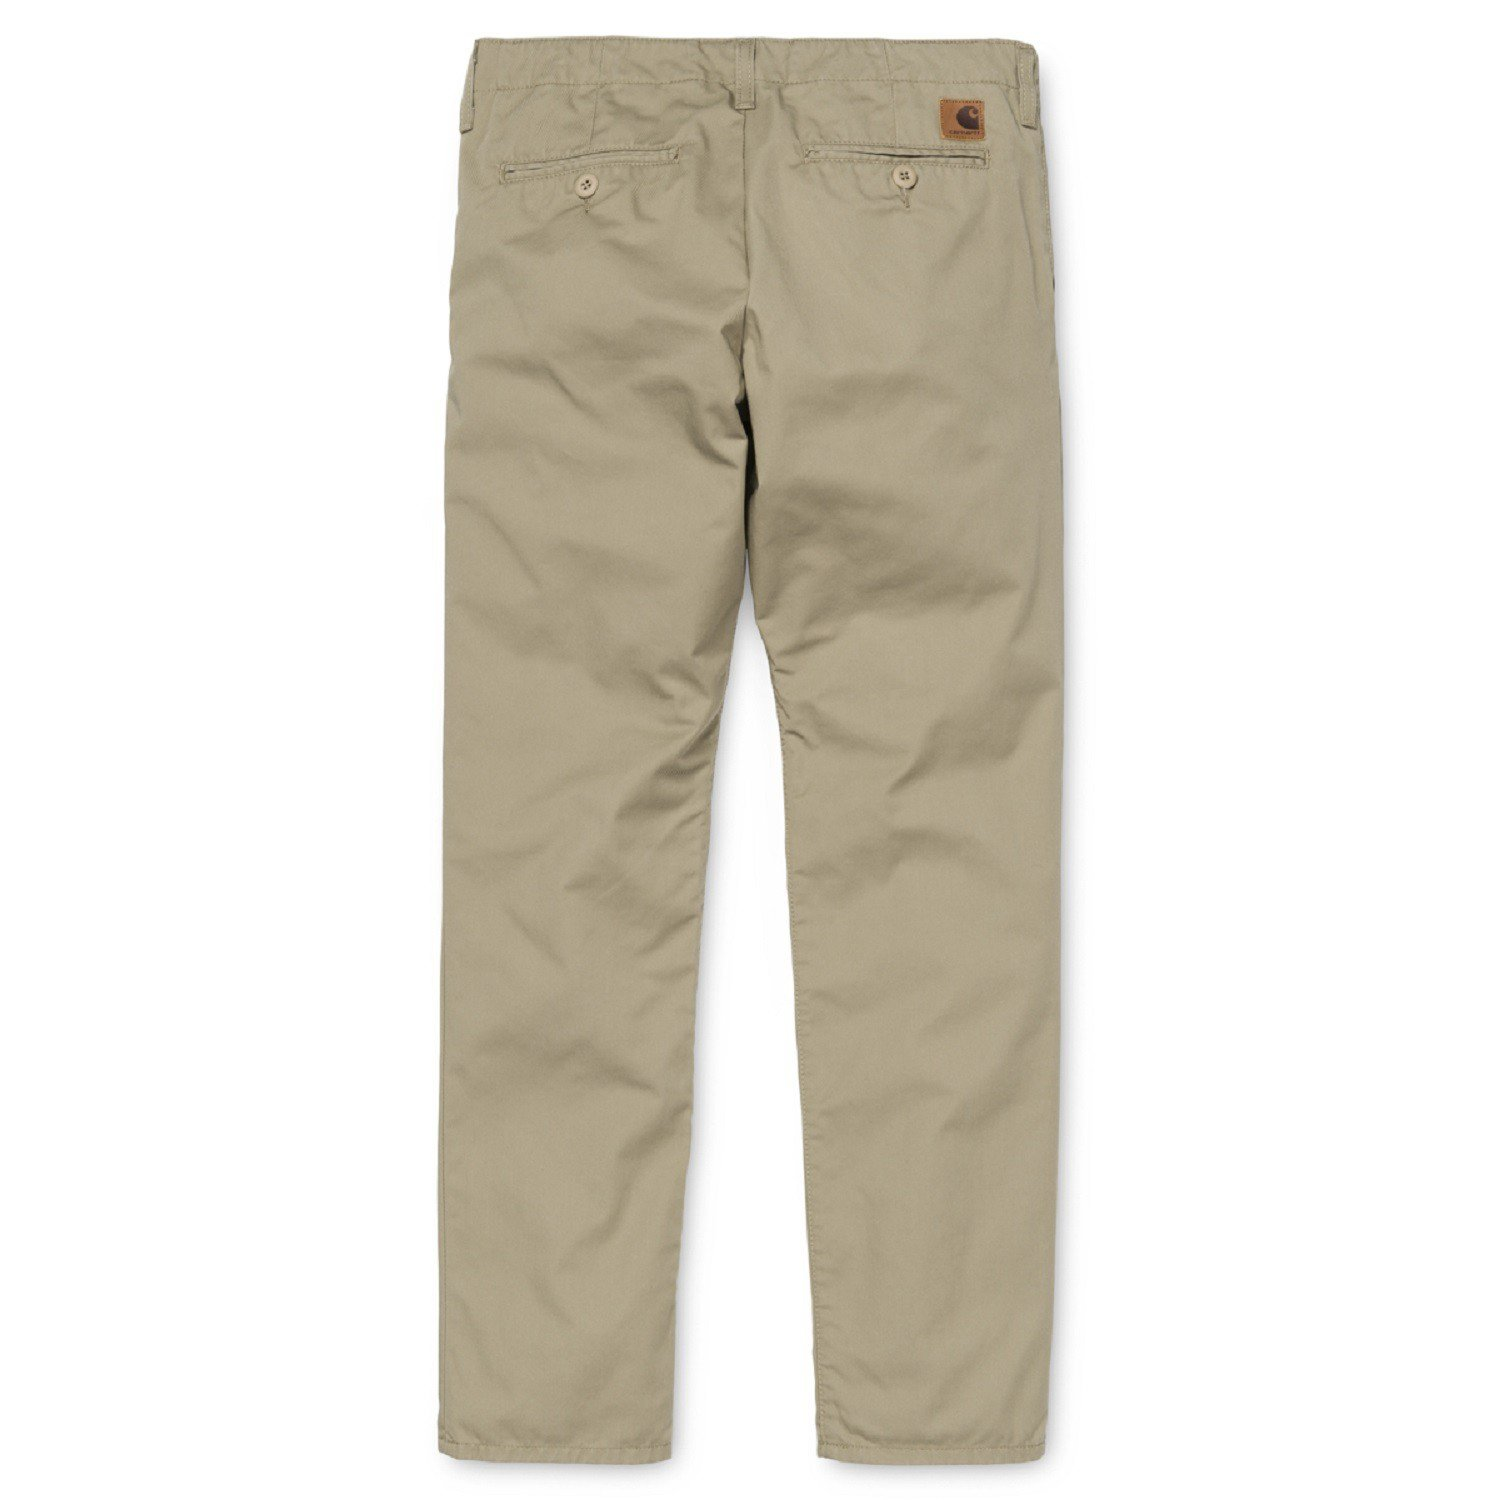 Carhartt Club Pant Leather Rinsed